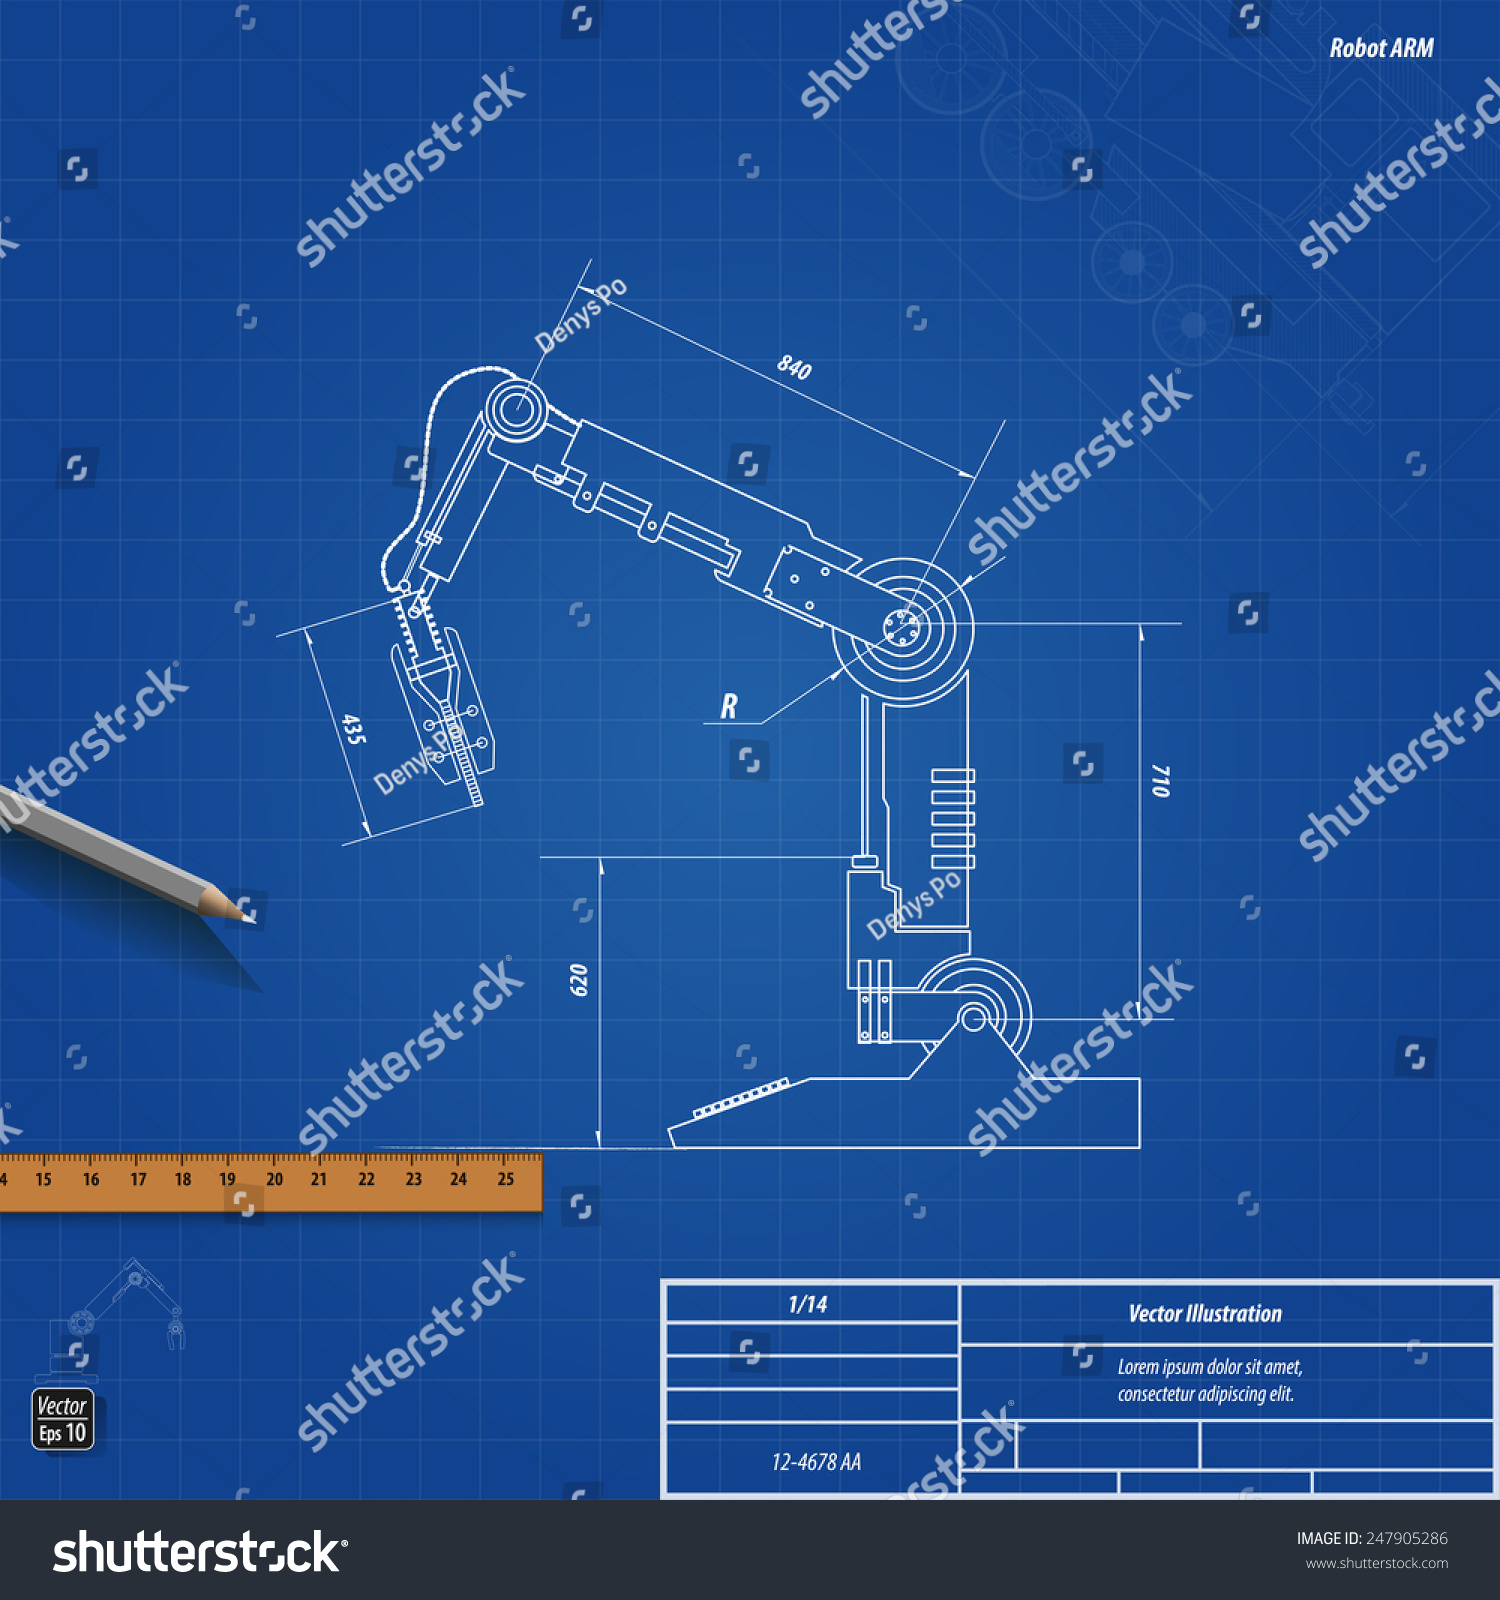 Blueprint Robotic Arm Vector Illustration Eps 10